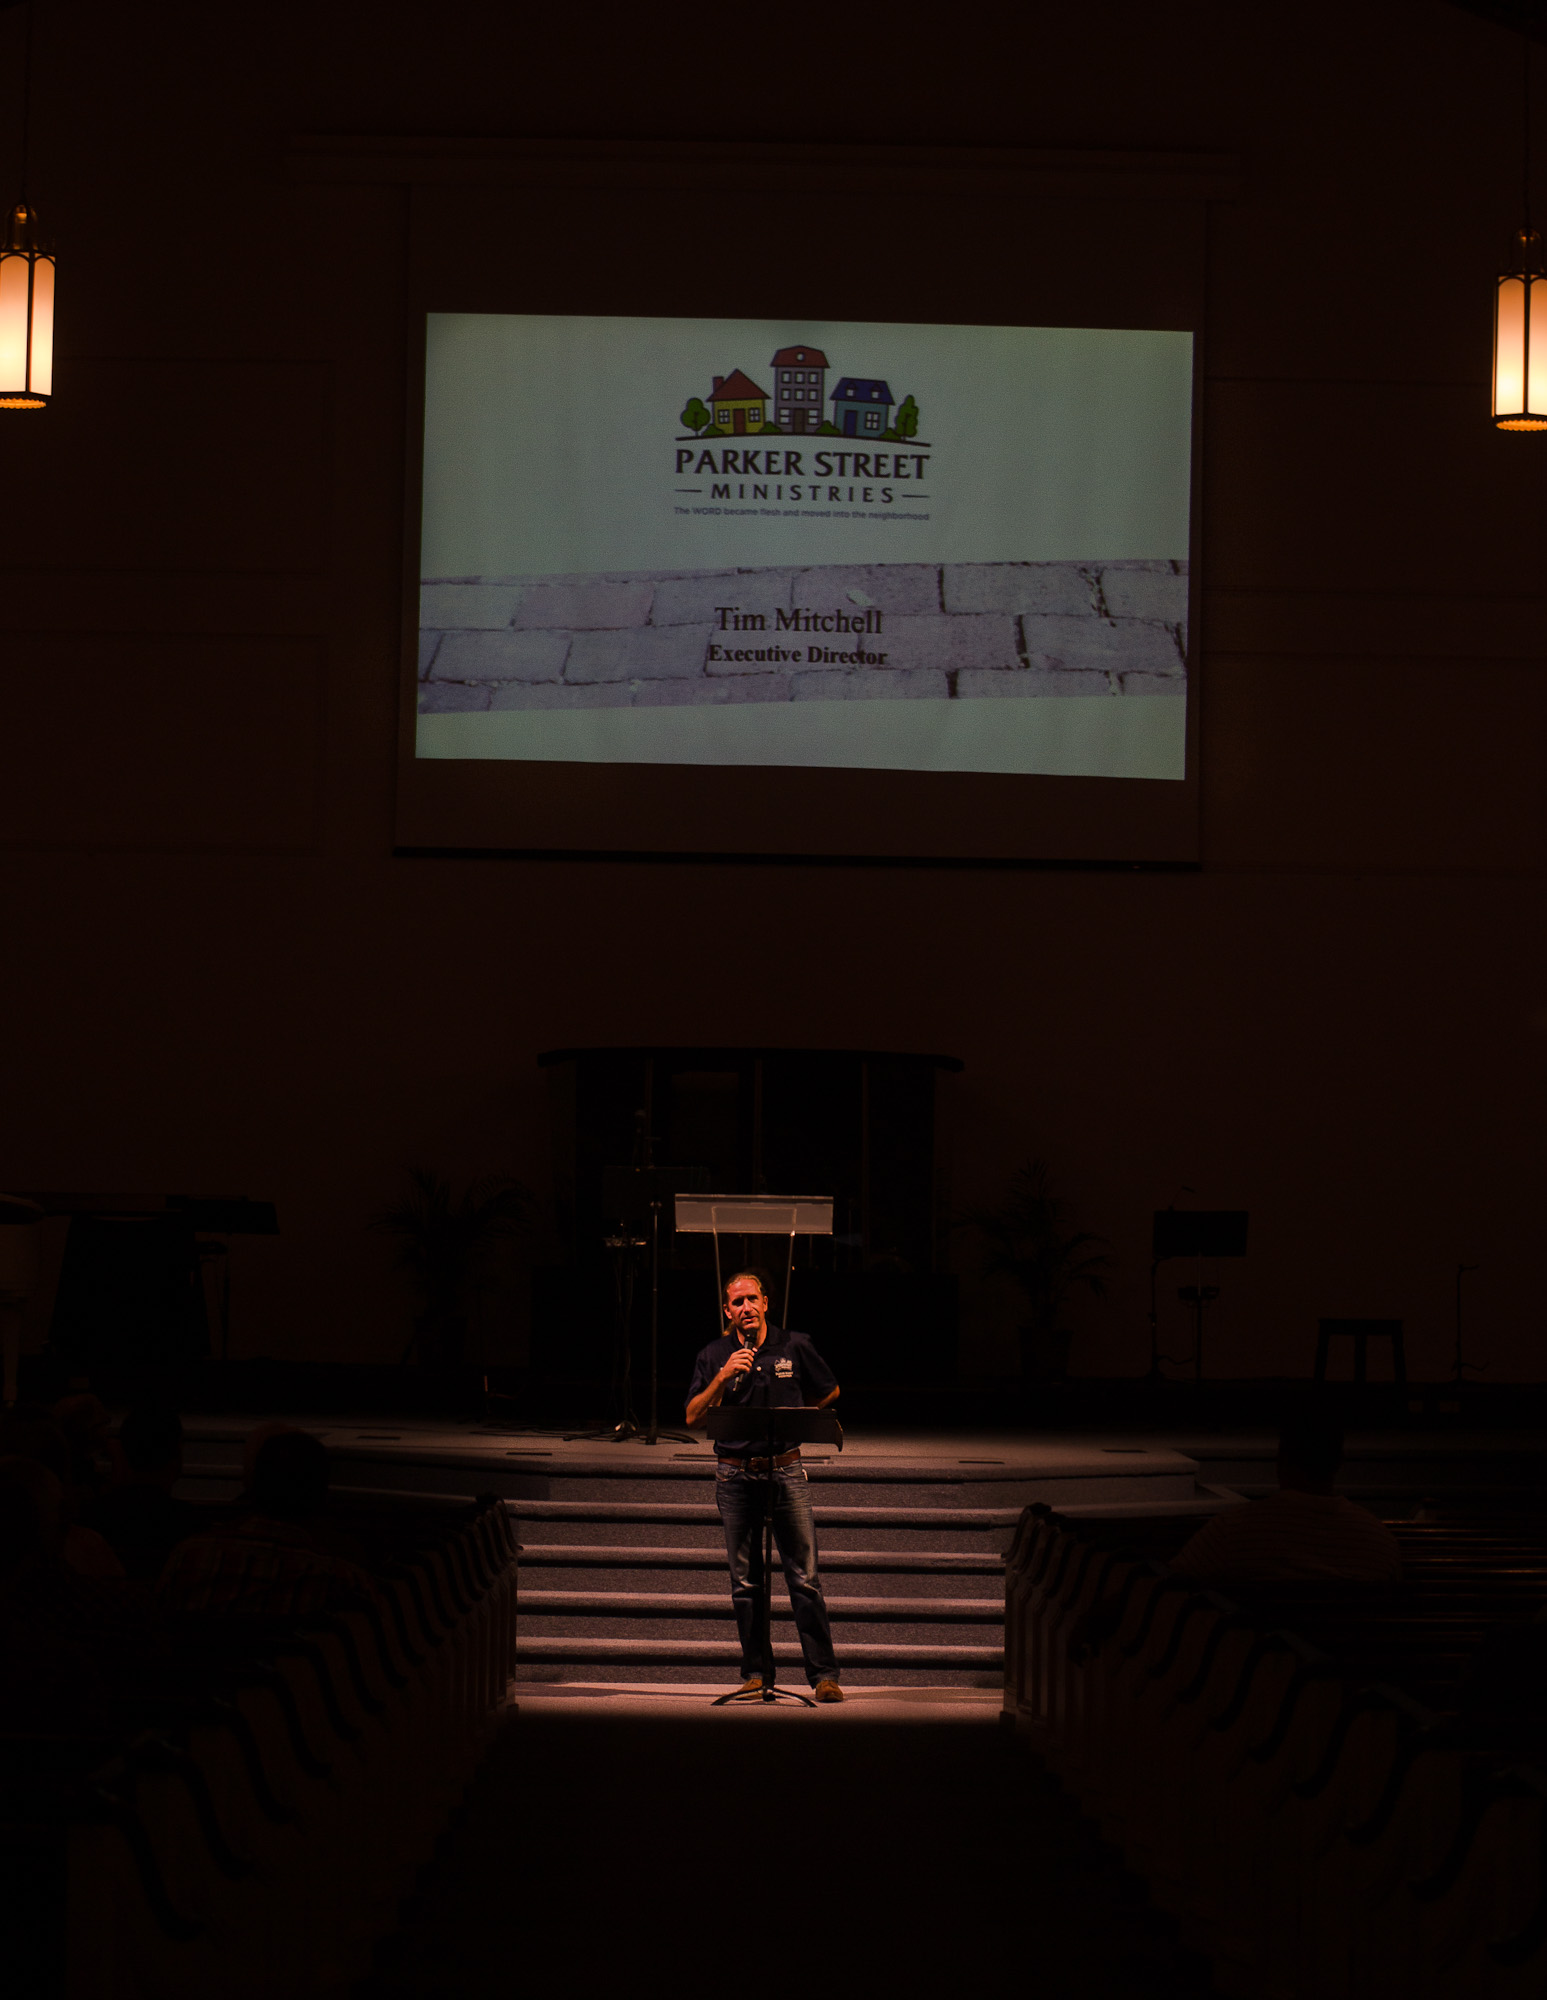 Tim Mitchell, Executive Director speaking at church